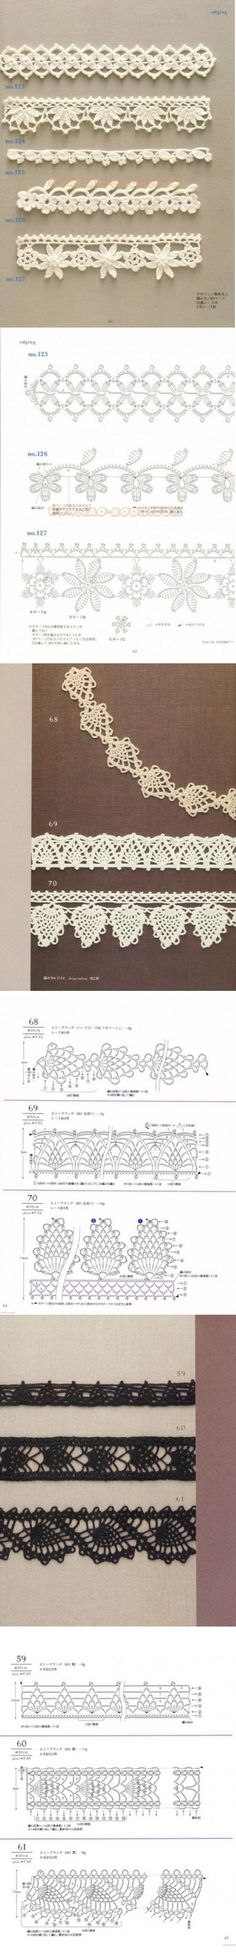 Ideas For Crochet Edging Patterns Lace Ganchillo Crochet Boarders, Crochet Edging Patterns, Crochet Lace Edging, Crochet Diy, Crochet Diagram, Crochet Chart, Thread Crochet, Love Crochet, Crochet Doilies